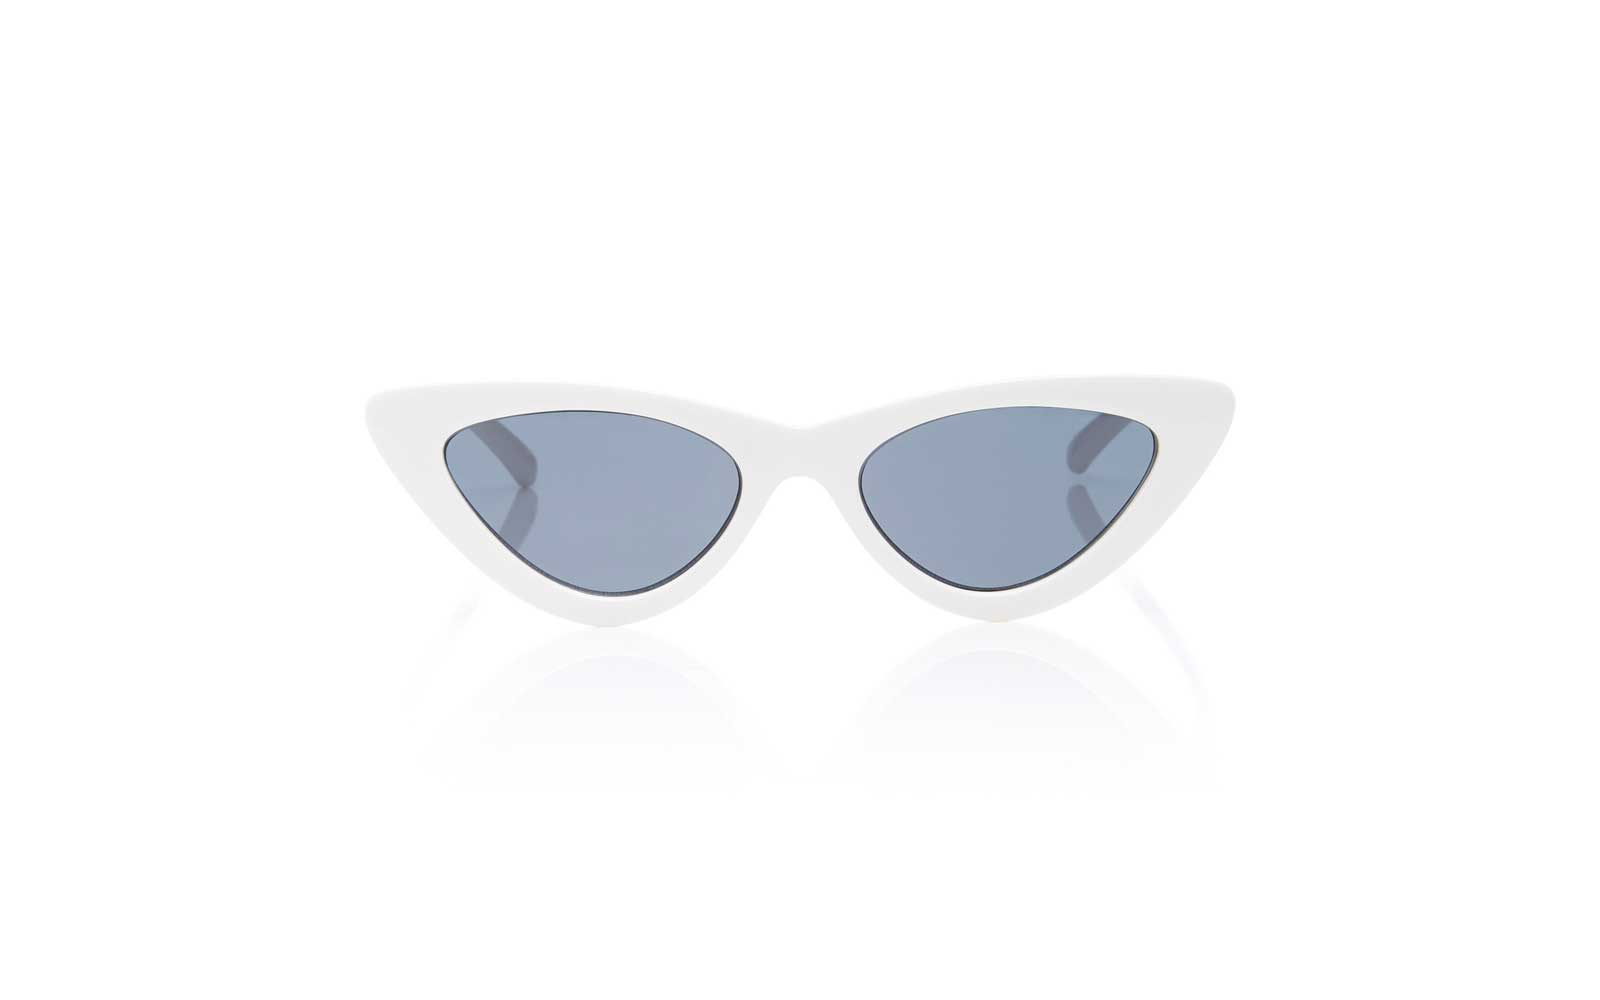 Le Specs x Adam Selman White Cat Eye Sunglasses